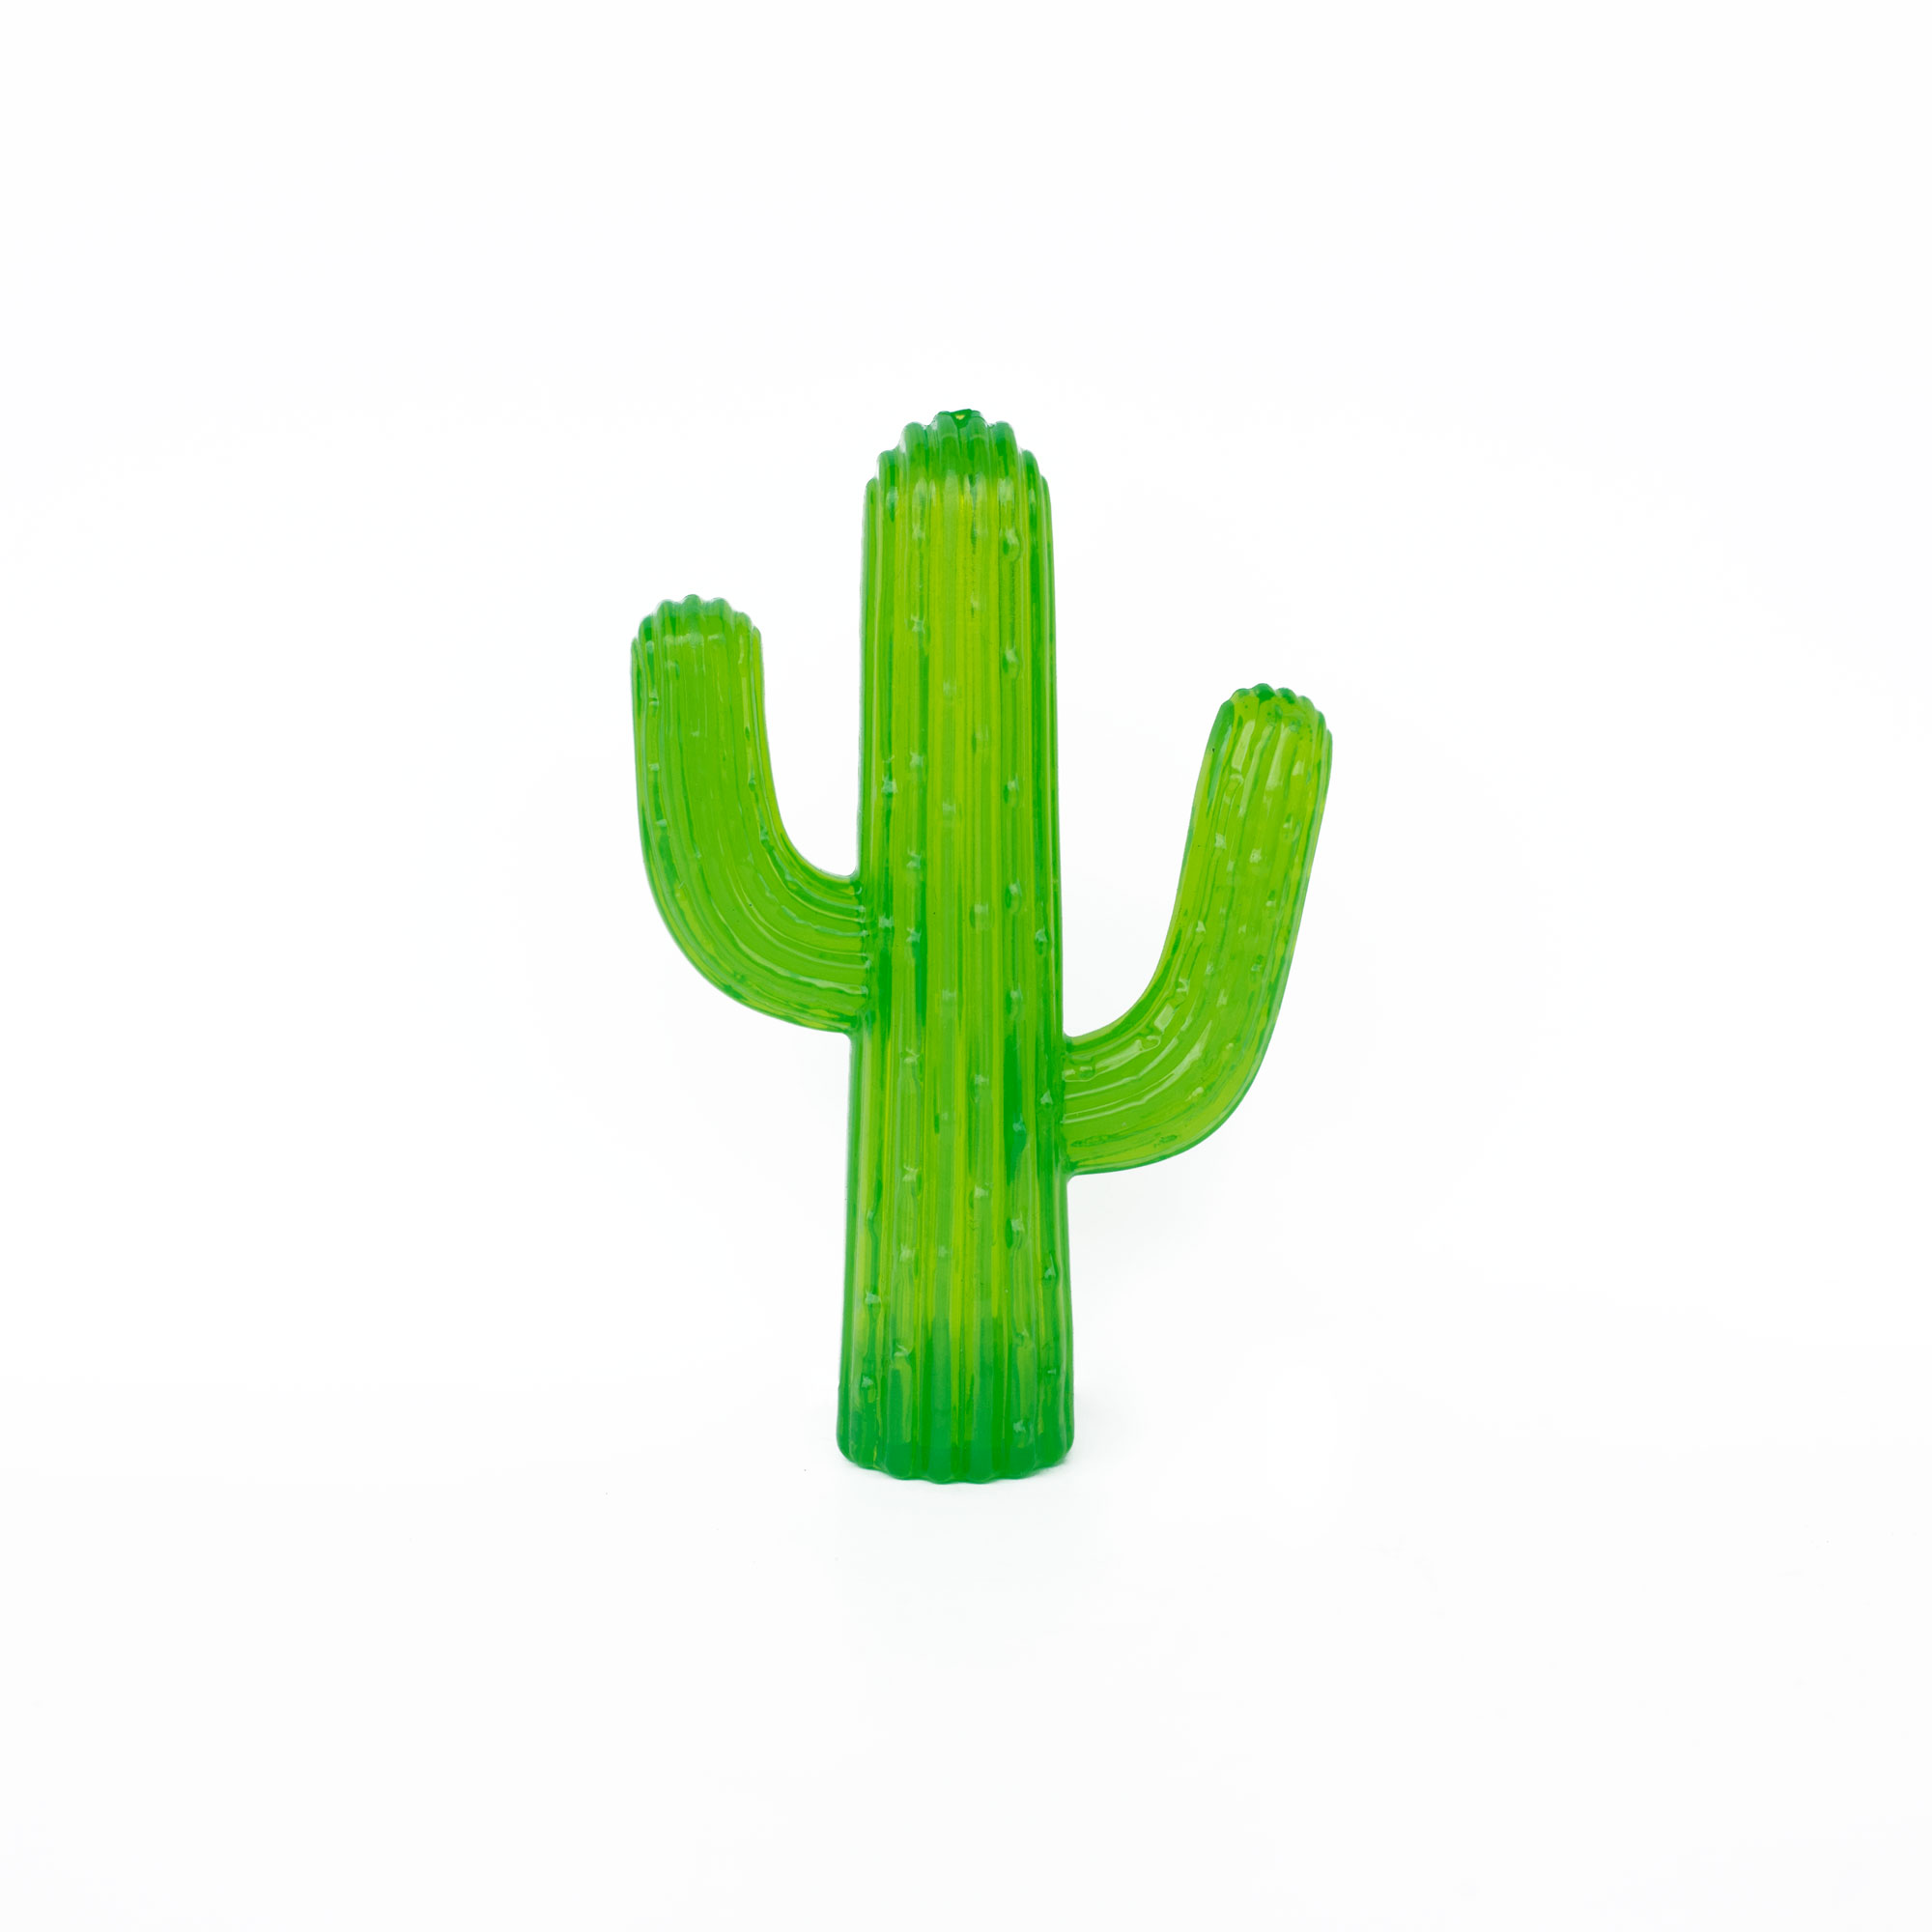 TPR Thermoplastic rubber cactus squeak toy